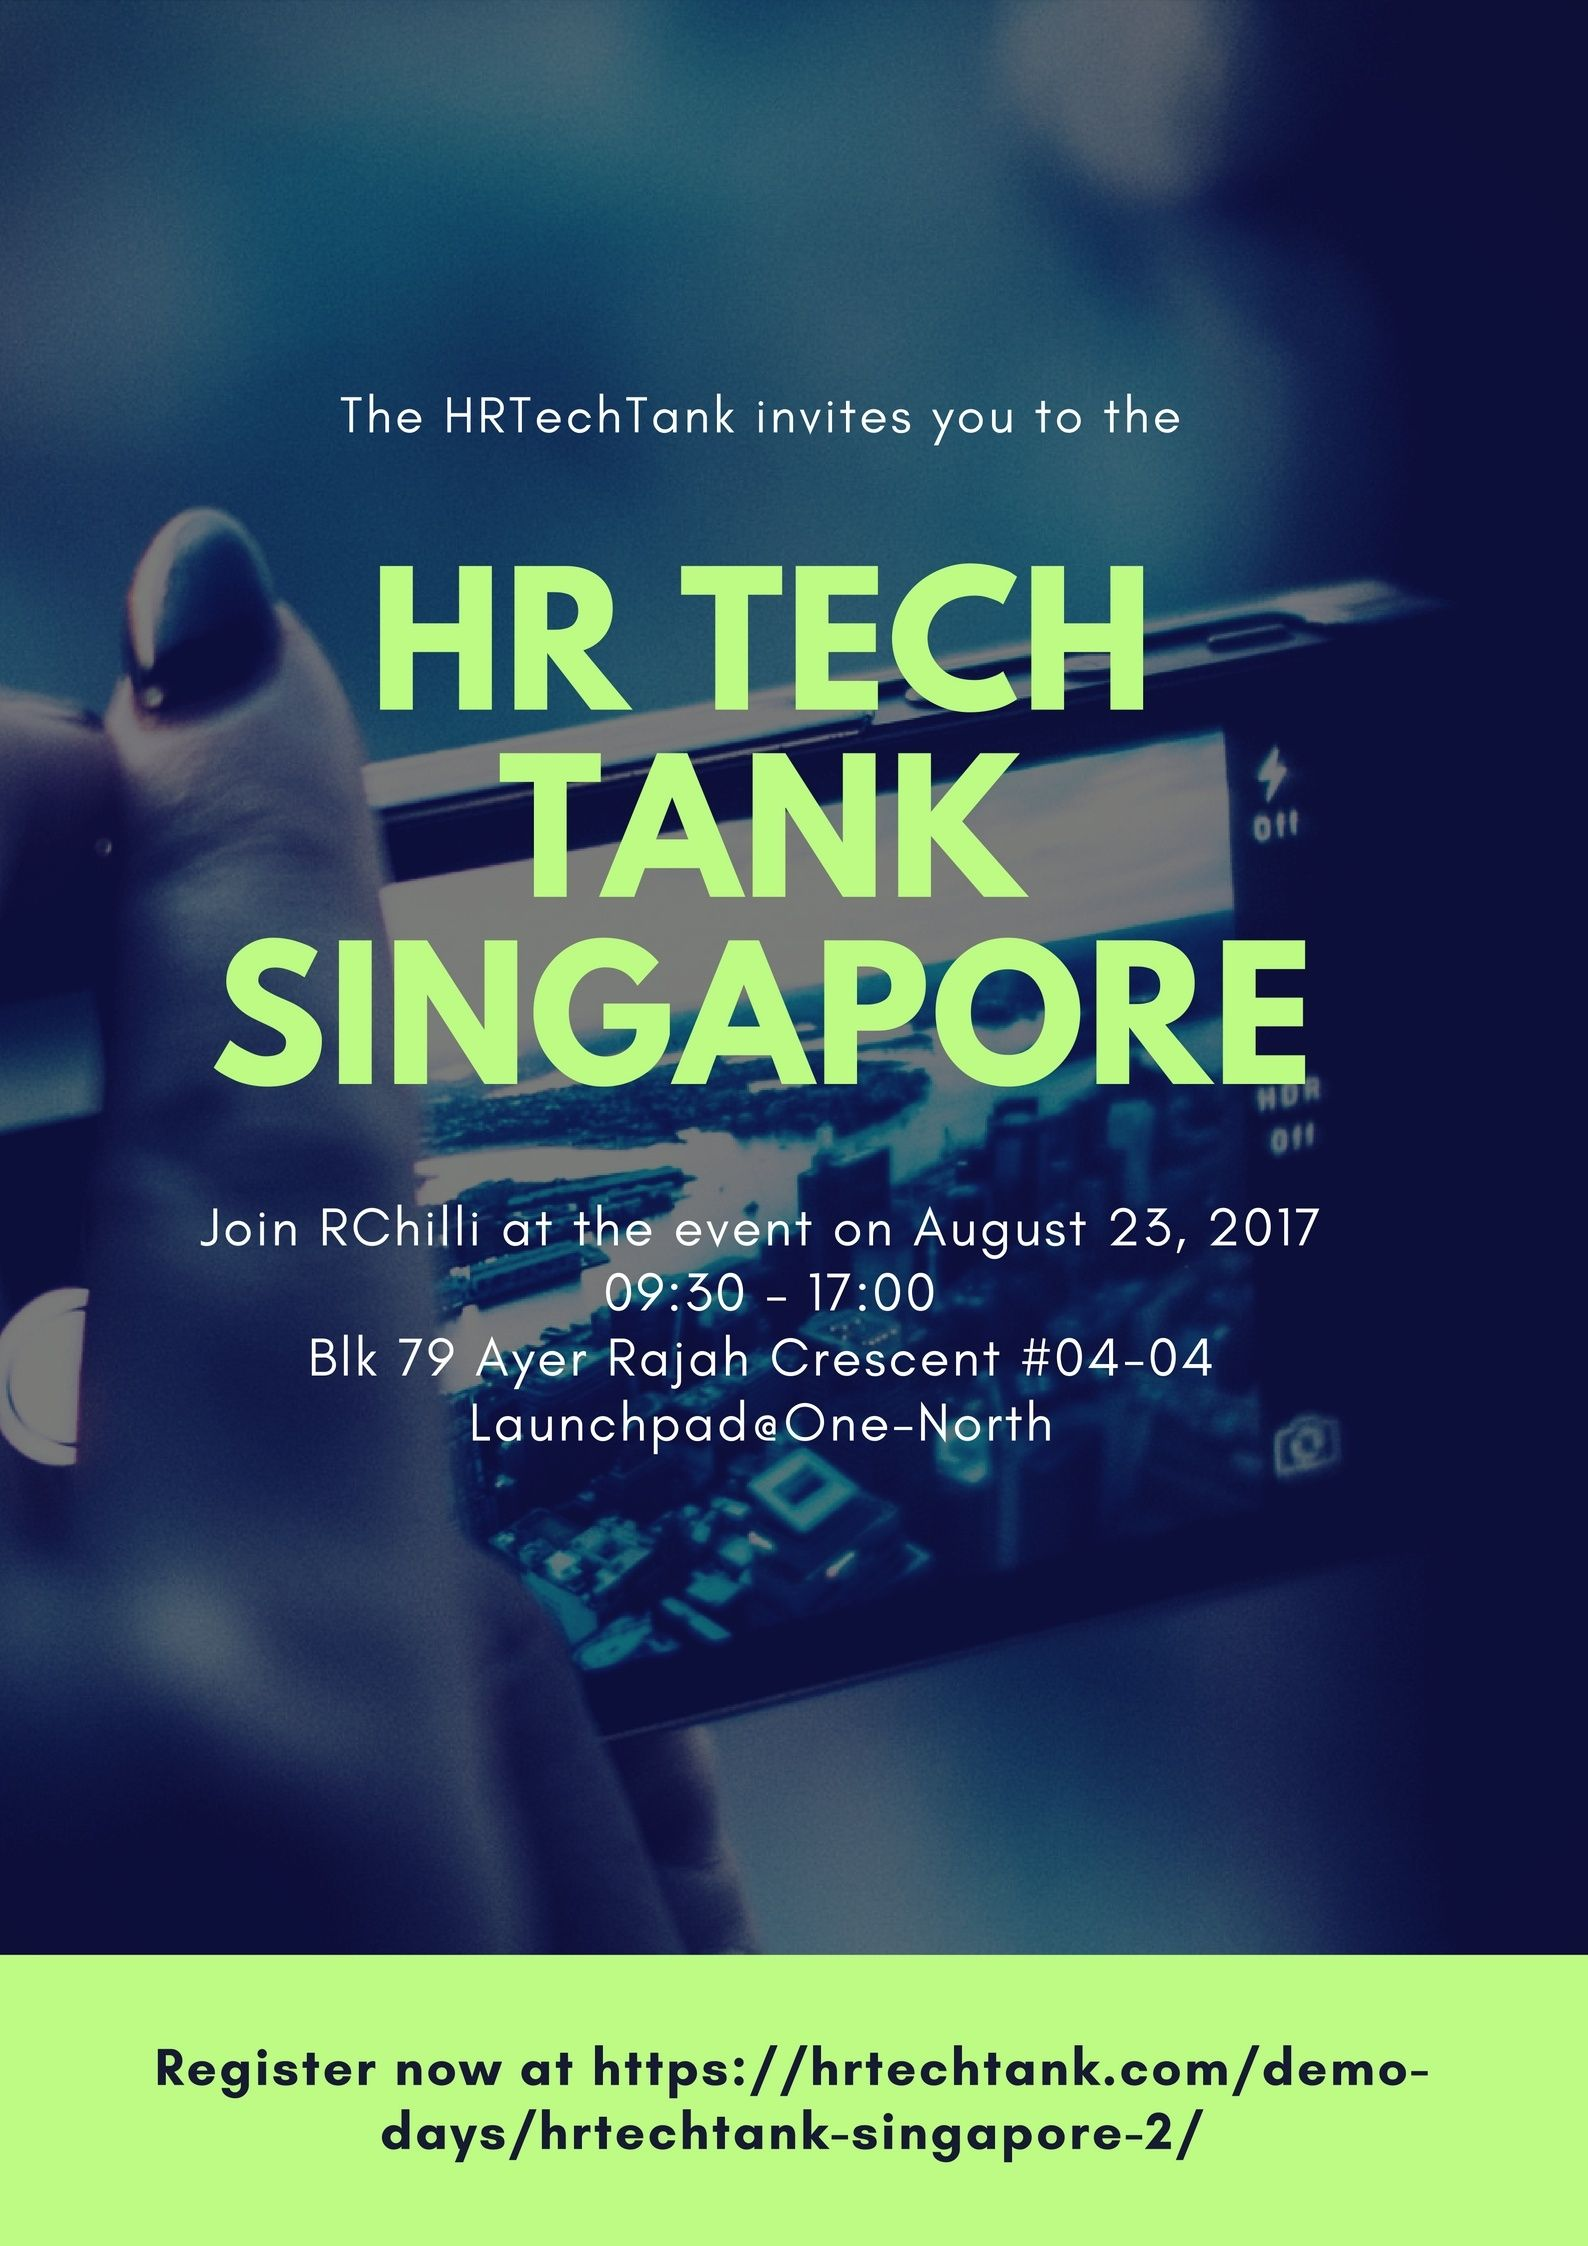 Hey! Are you attending HRTechTank?